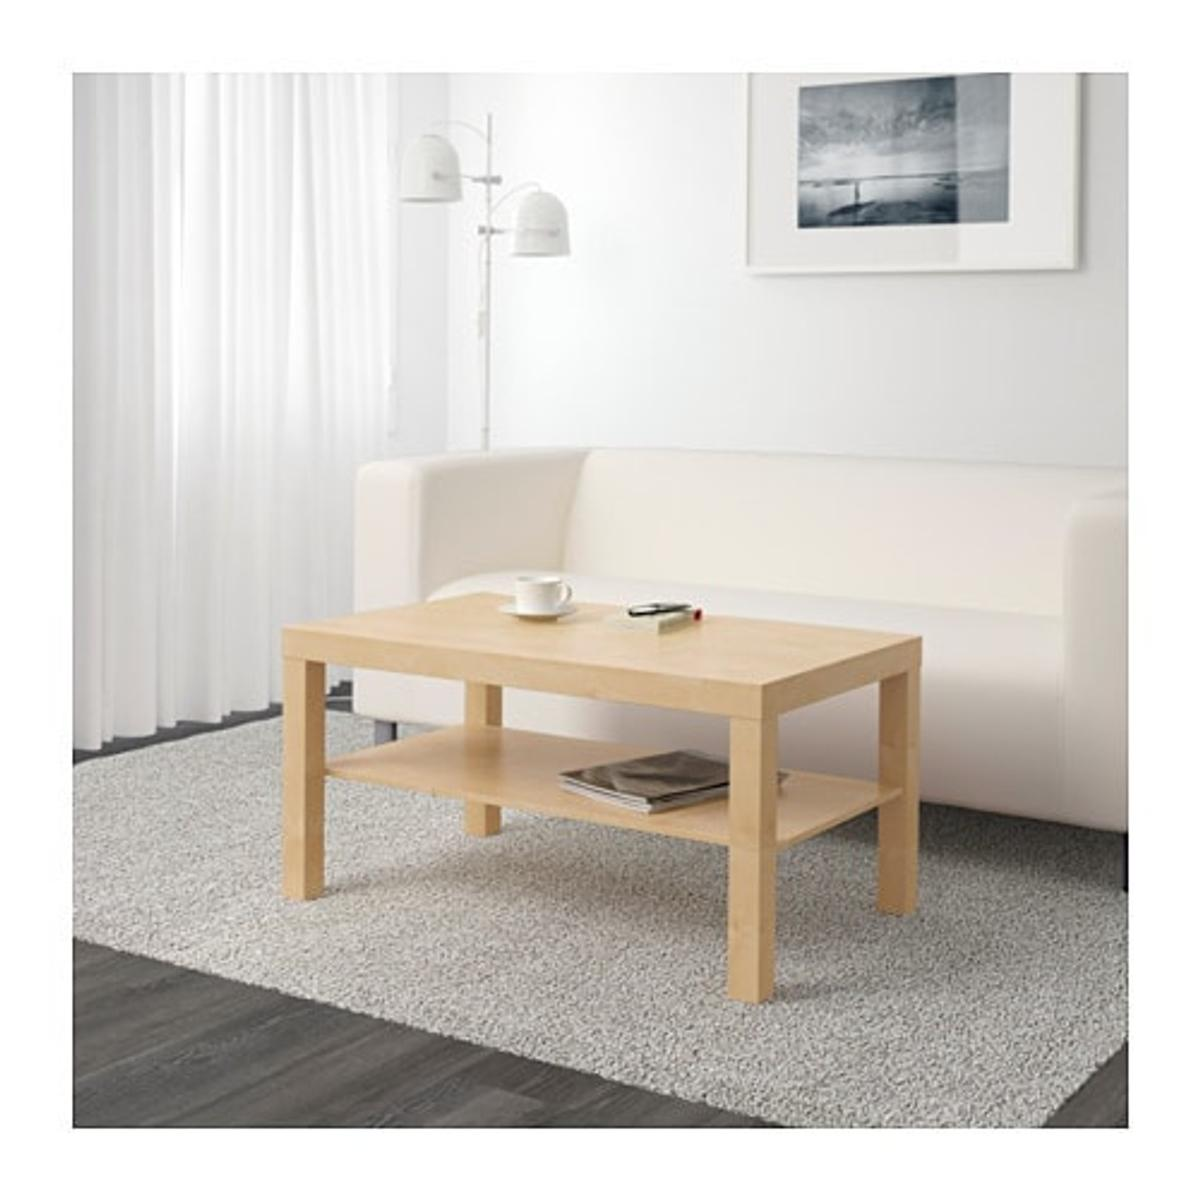 Couchtisch Ikea In 21035 Neuallermohe For Free For Sale Shpock